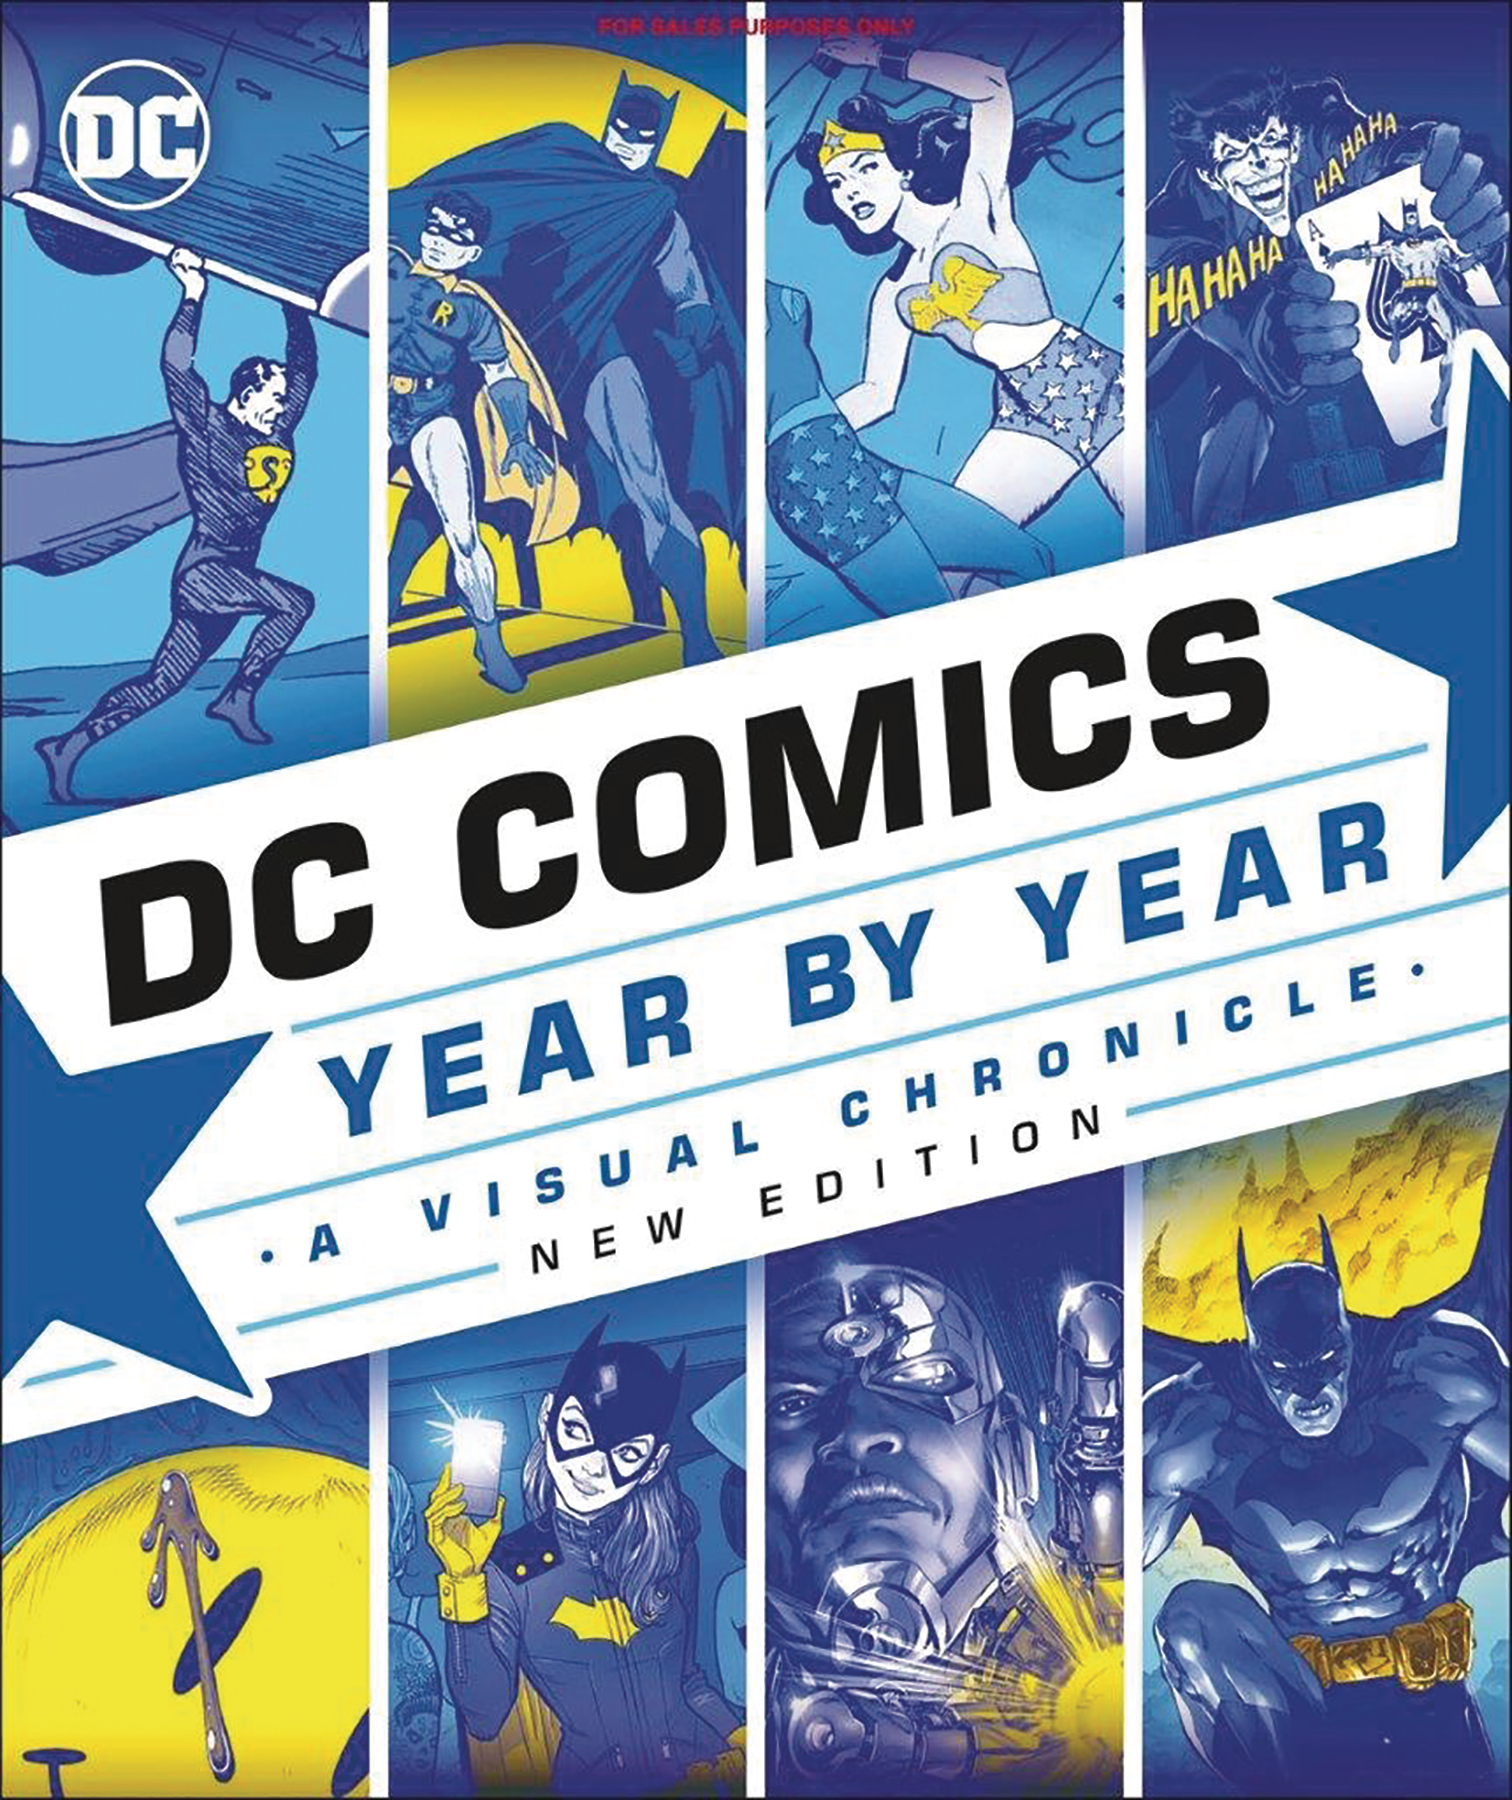 DC COMICS YEAR BY YEAR VISUAL CHRONICLE NEW SLIPCASE ED